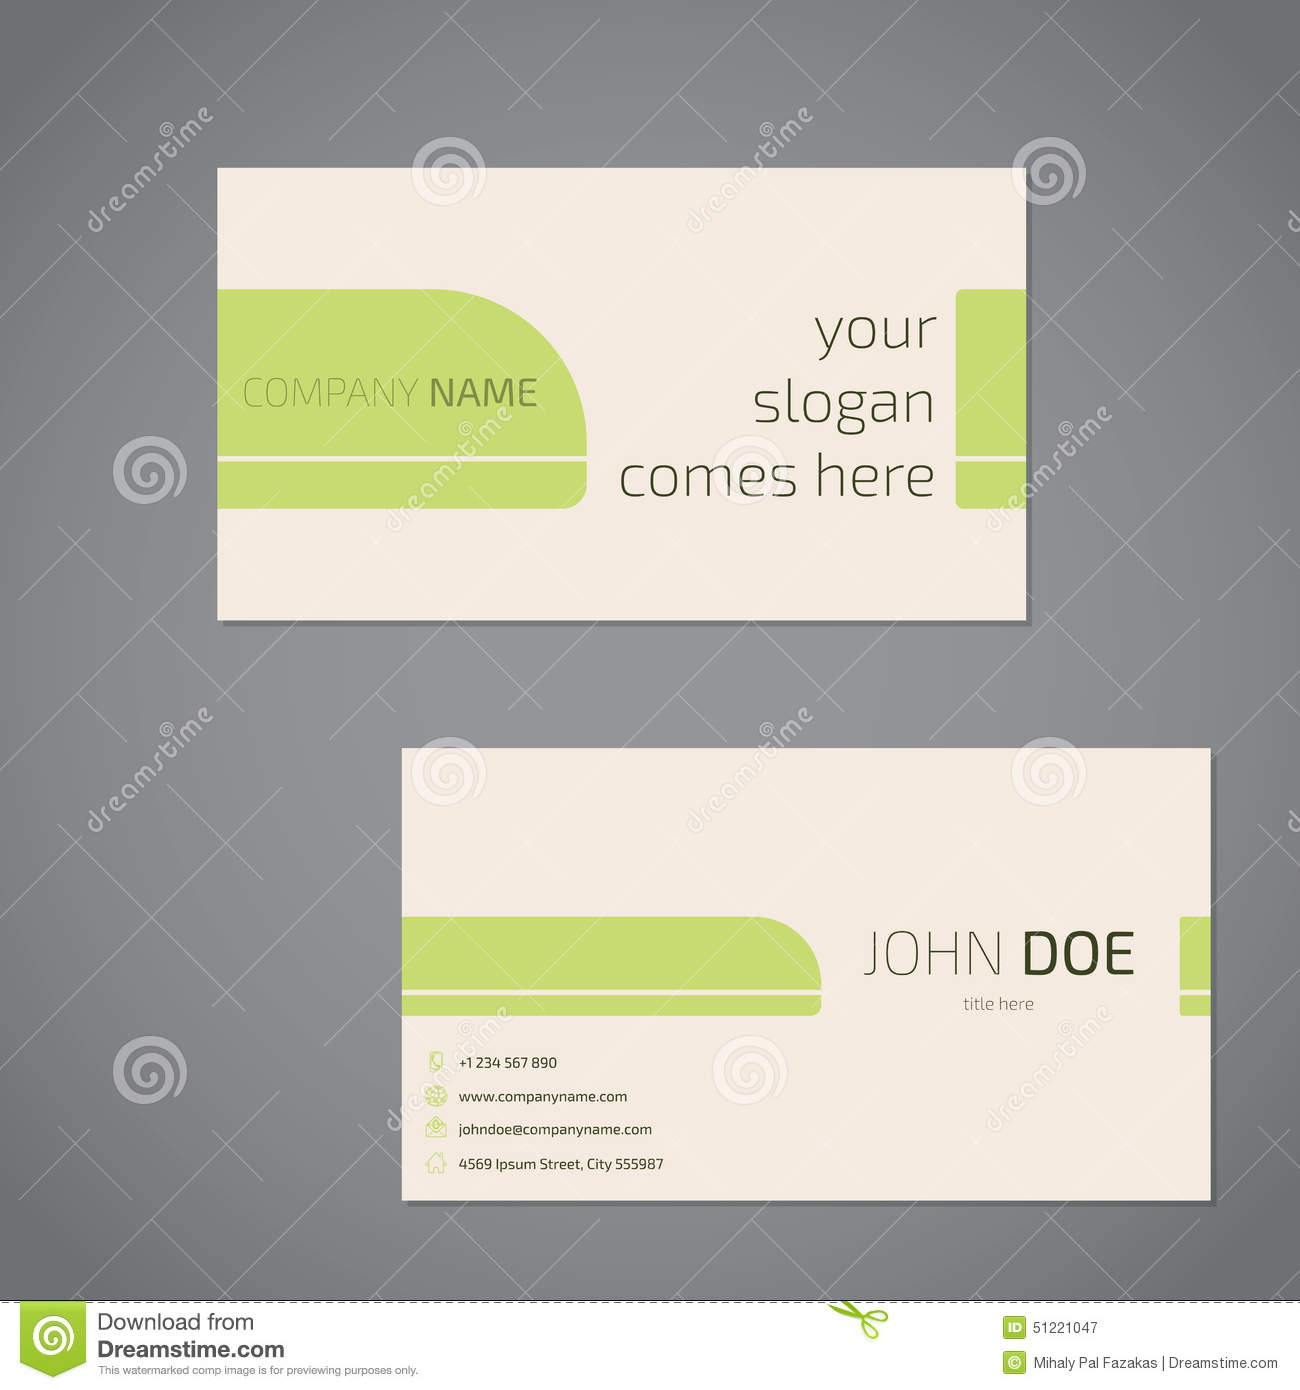 Business card or visiting card template stock vector illustration simplistic business card design with slogan royalty free stock photography colourmoves